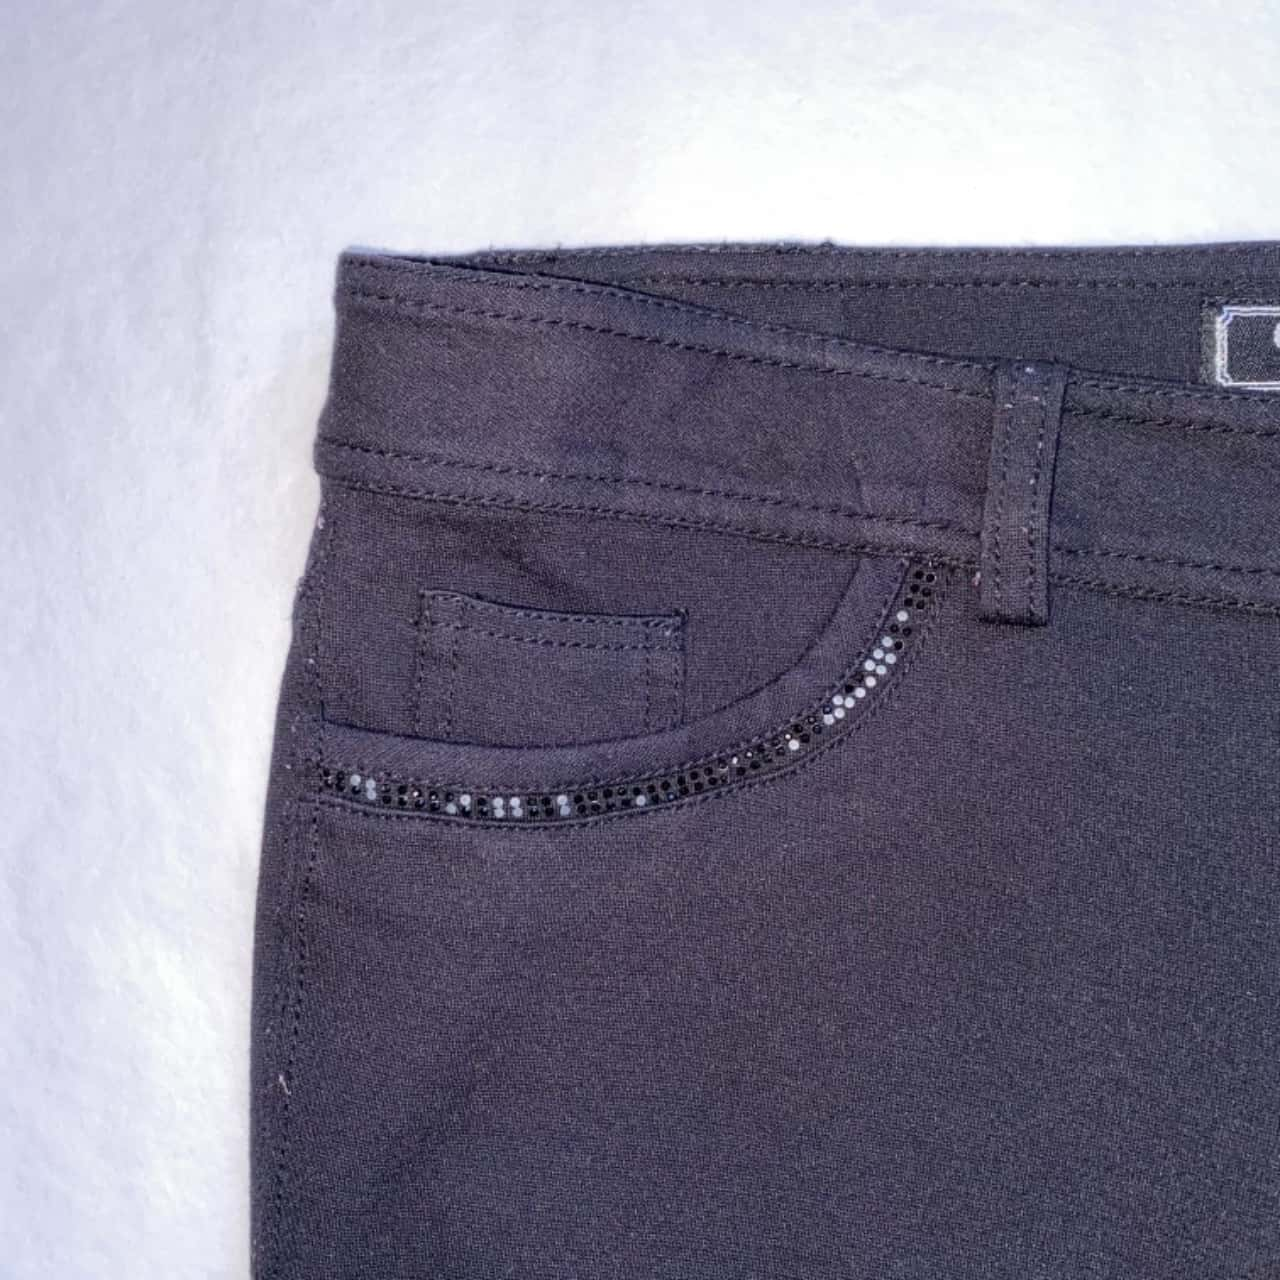 ** REDUCED ** Guess Women's Size 28 Black Stretch Jeans